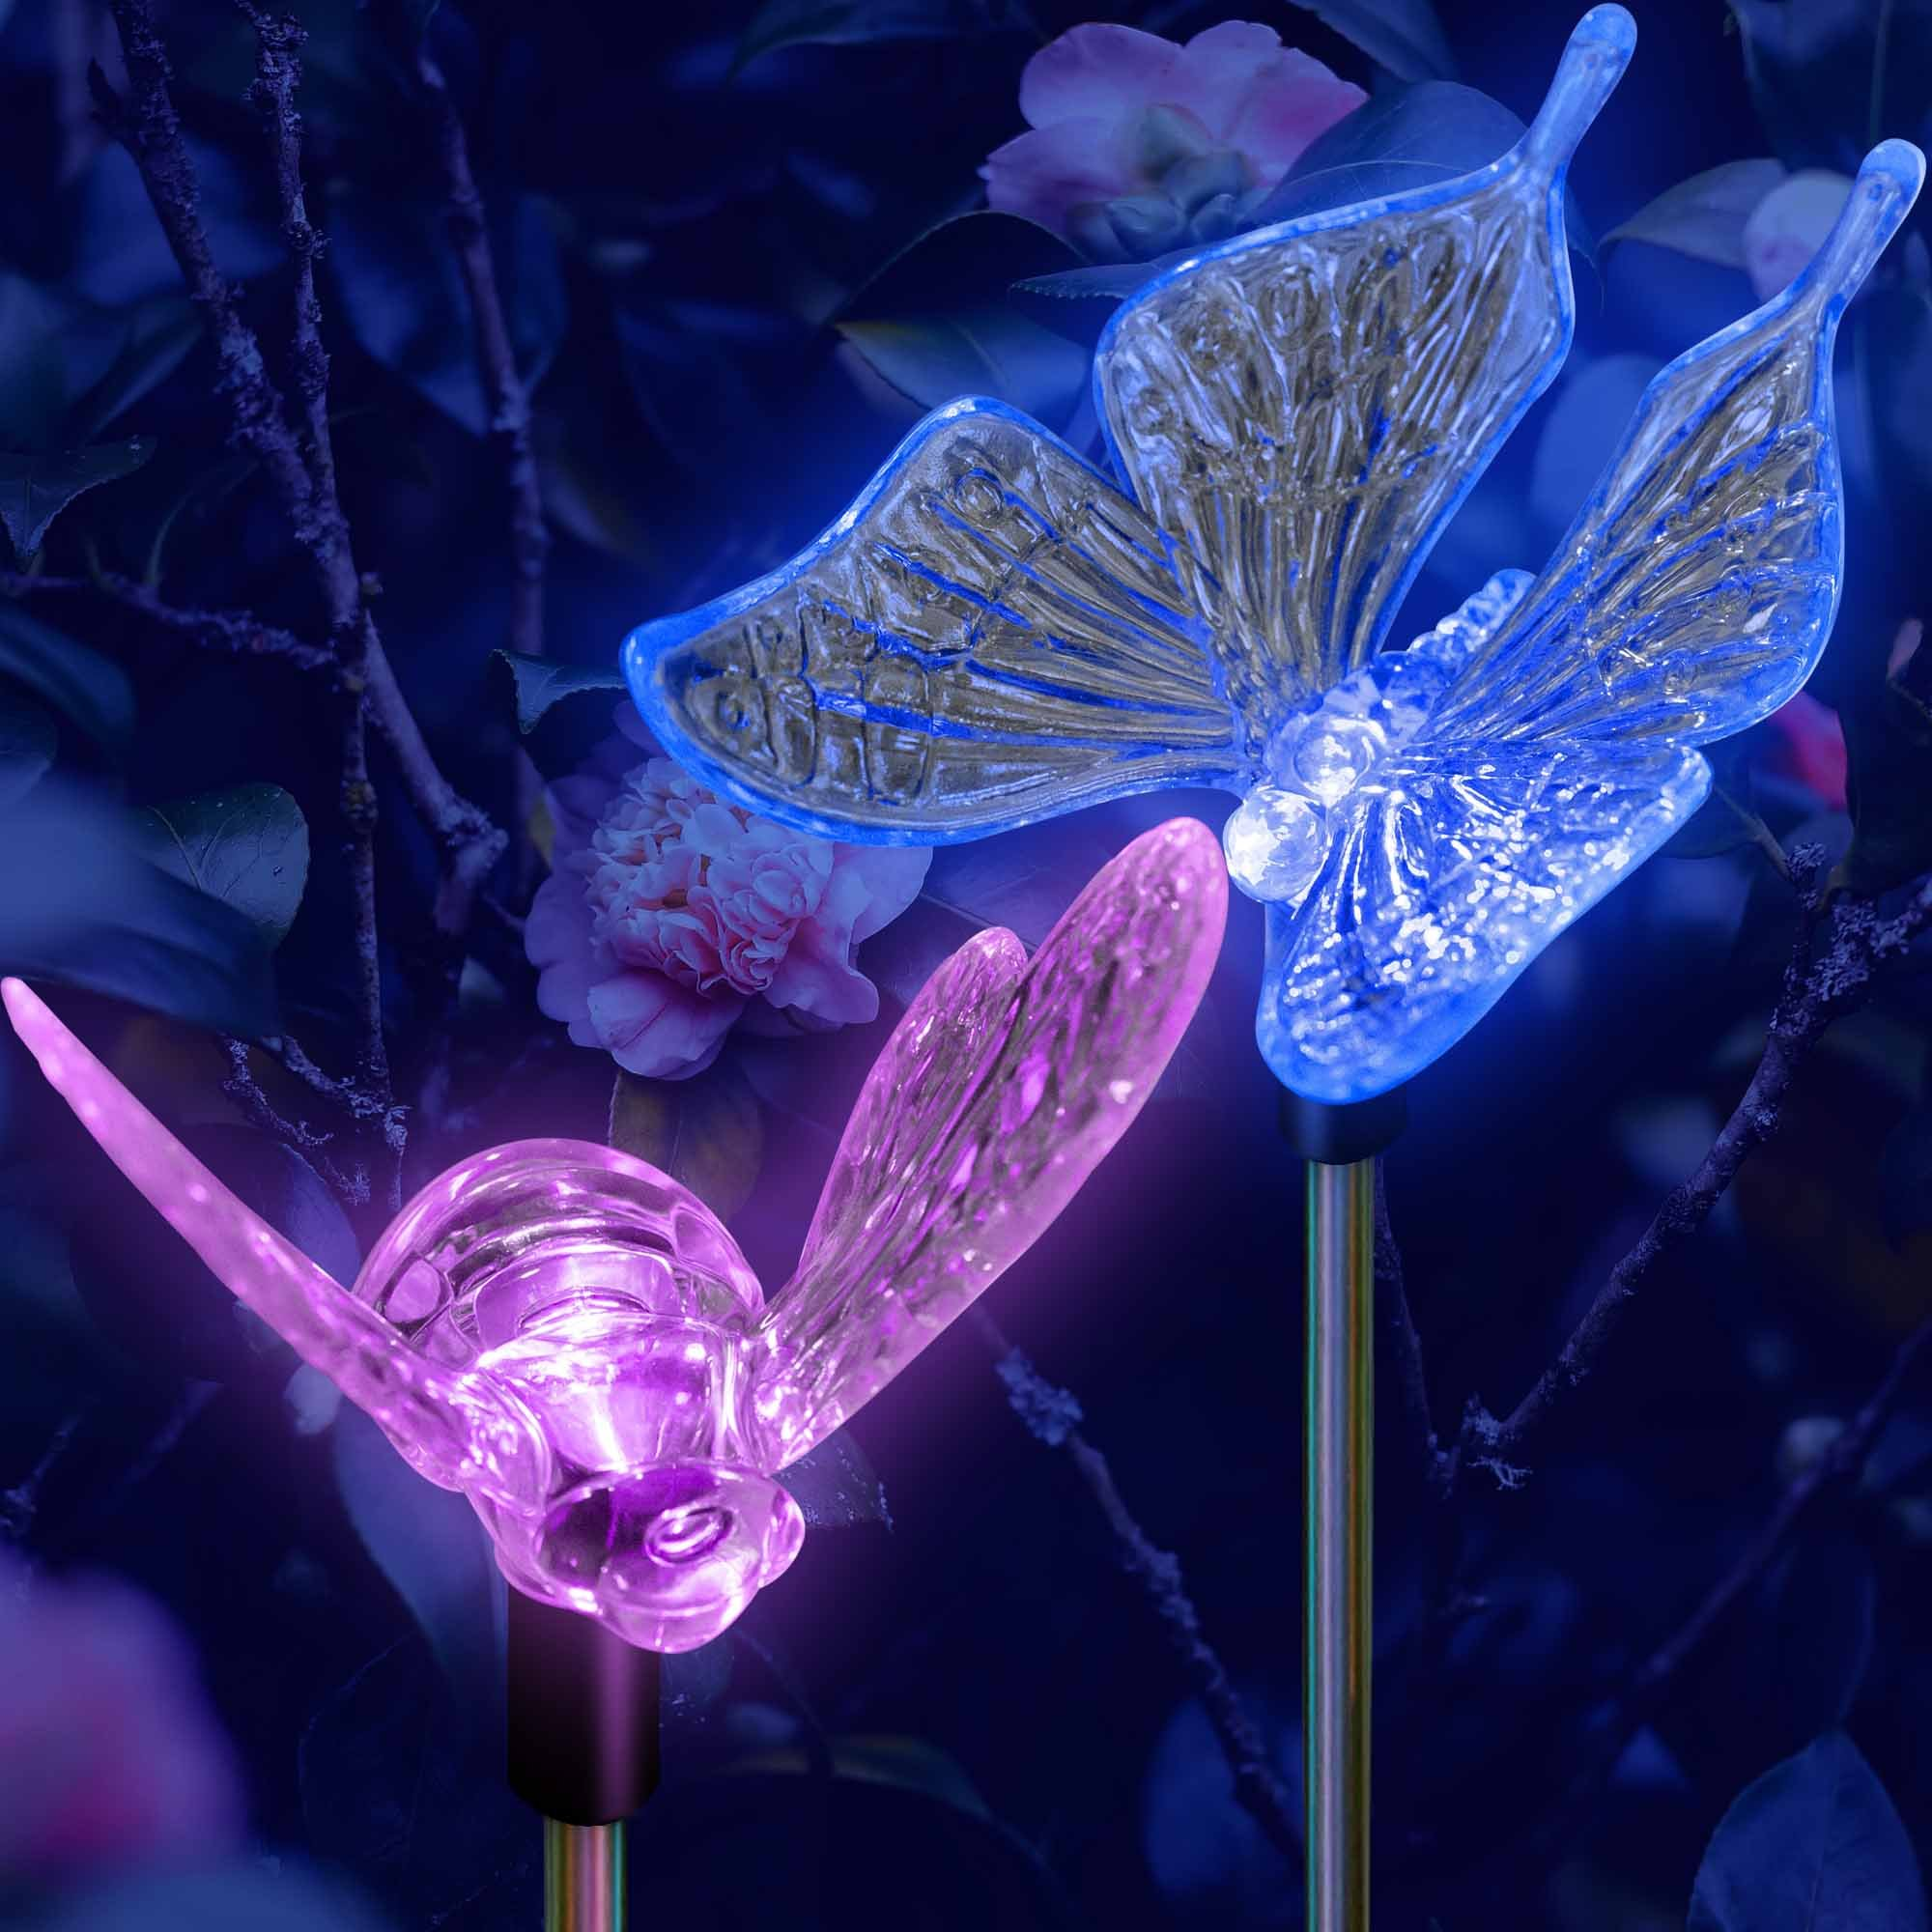 SolarDuke Solar Garden Outdoor Stake Lights Butterfly and Bumble Bee Garden Lighting Path Decoration Color Changing Patio Lawn Backyard Decor by SolarDuke (Image #3)